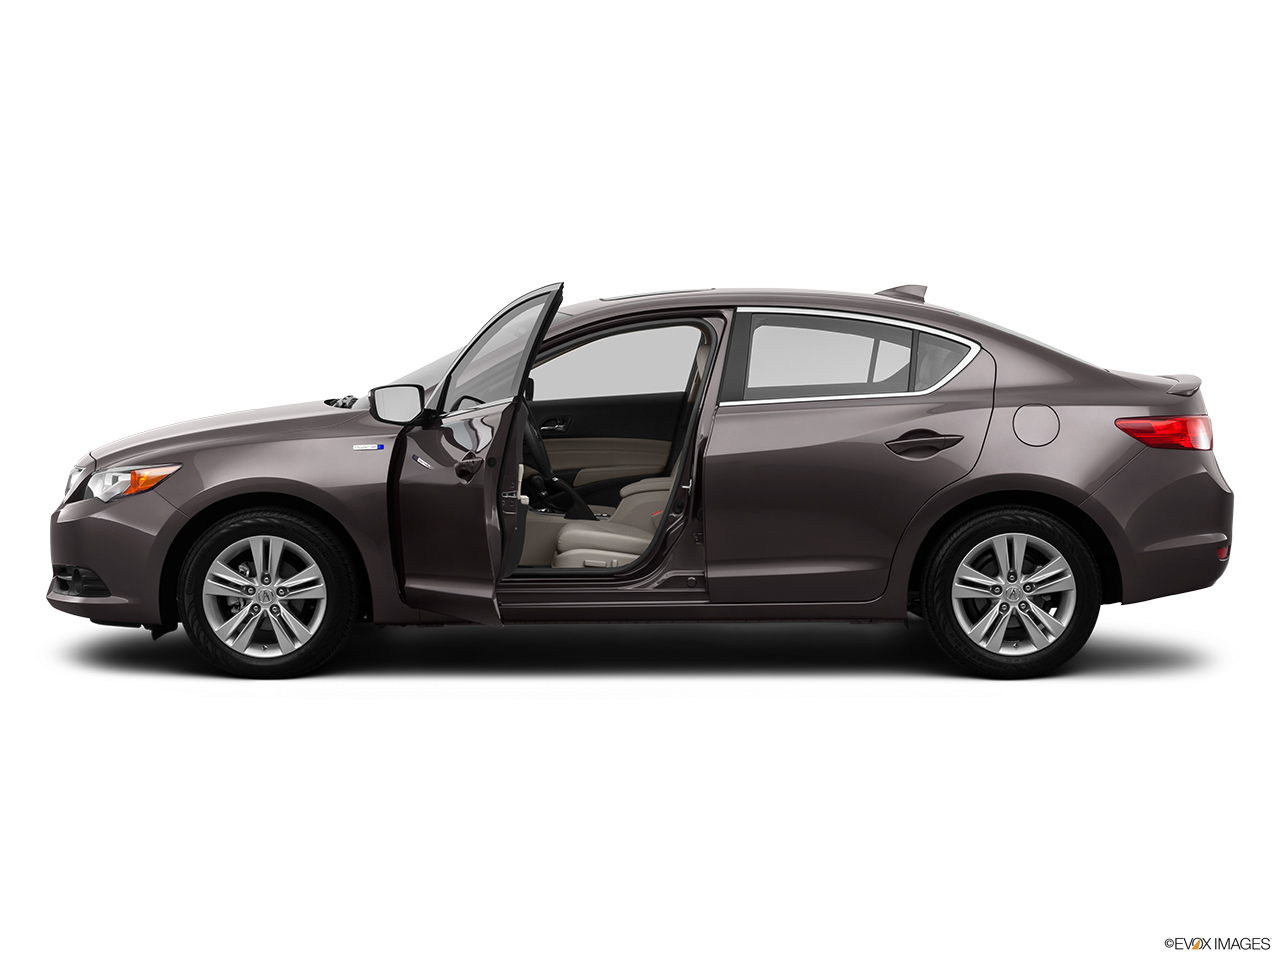 2014 Acura ILX Hybrid Base Driver's side profile with drivers side door open.